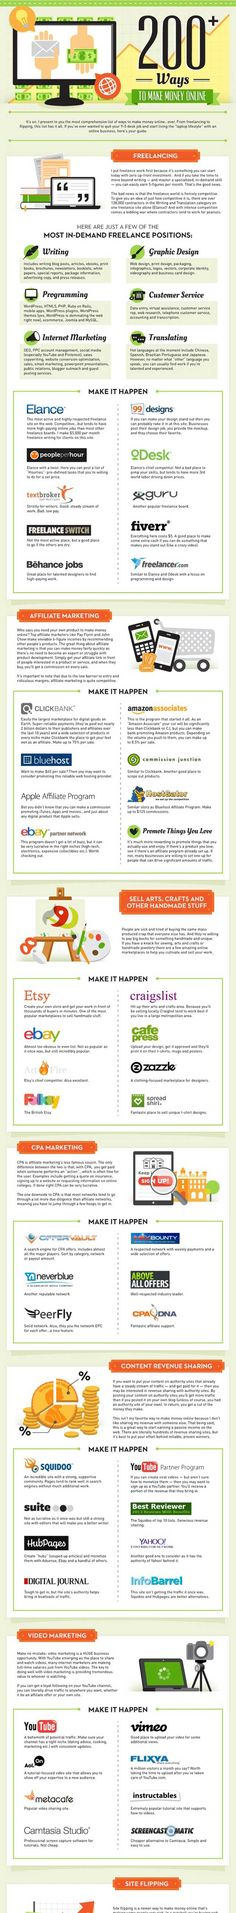 200+ Ways To Make Money Online #infographic